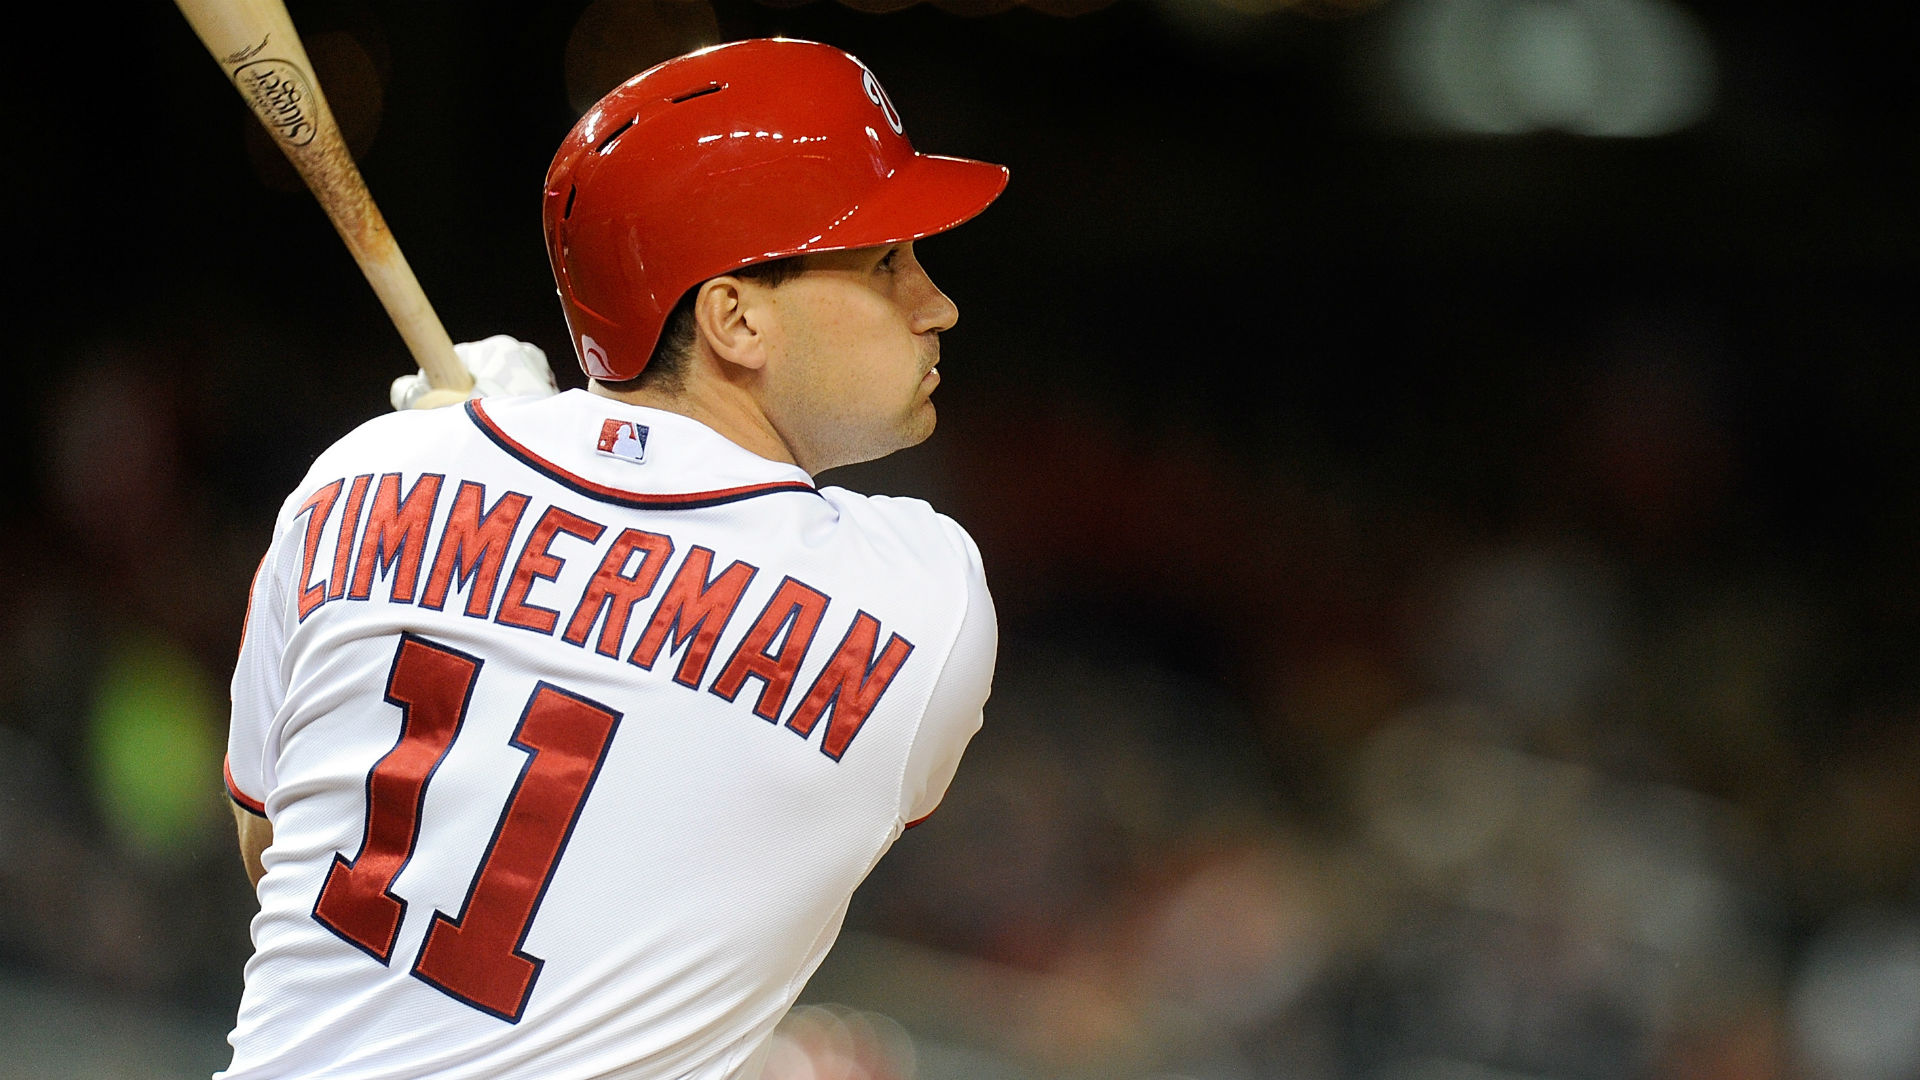 Ryan-Zimmerman-041915-GETTY-FTR